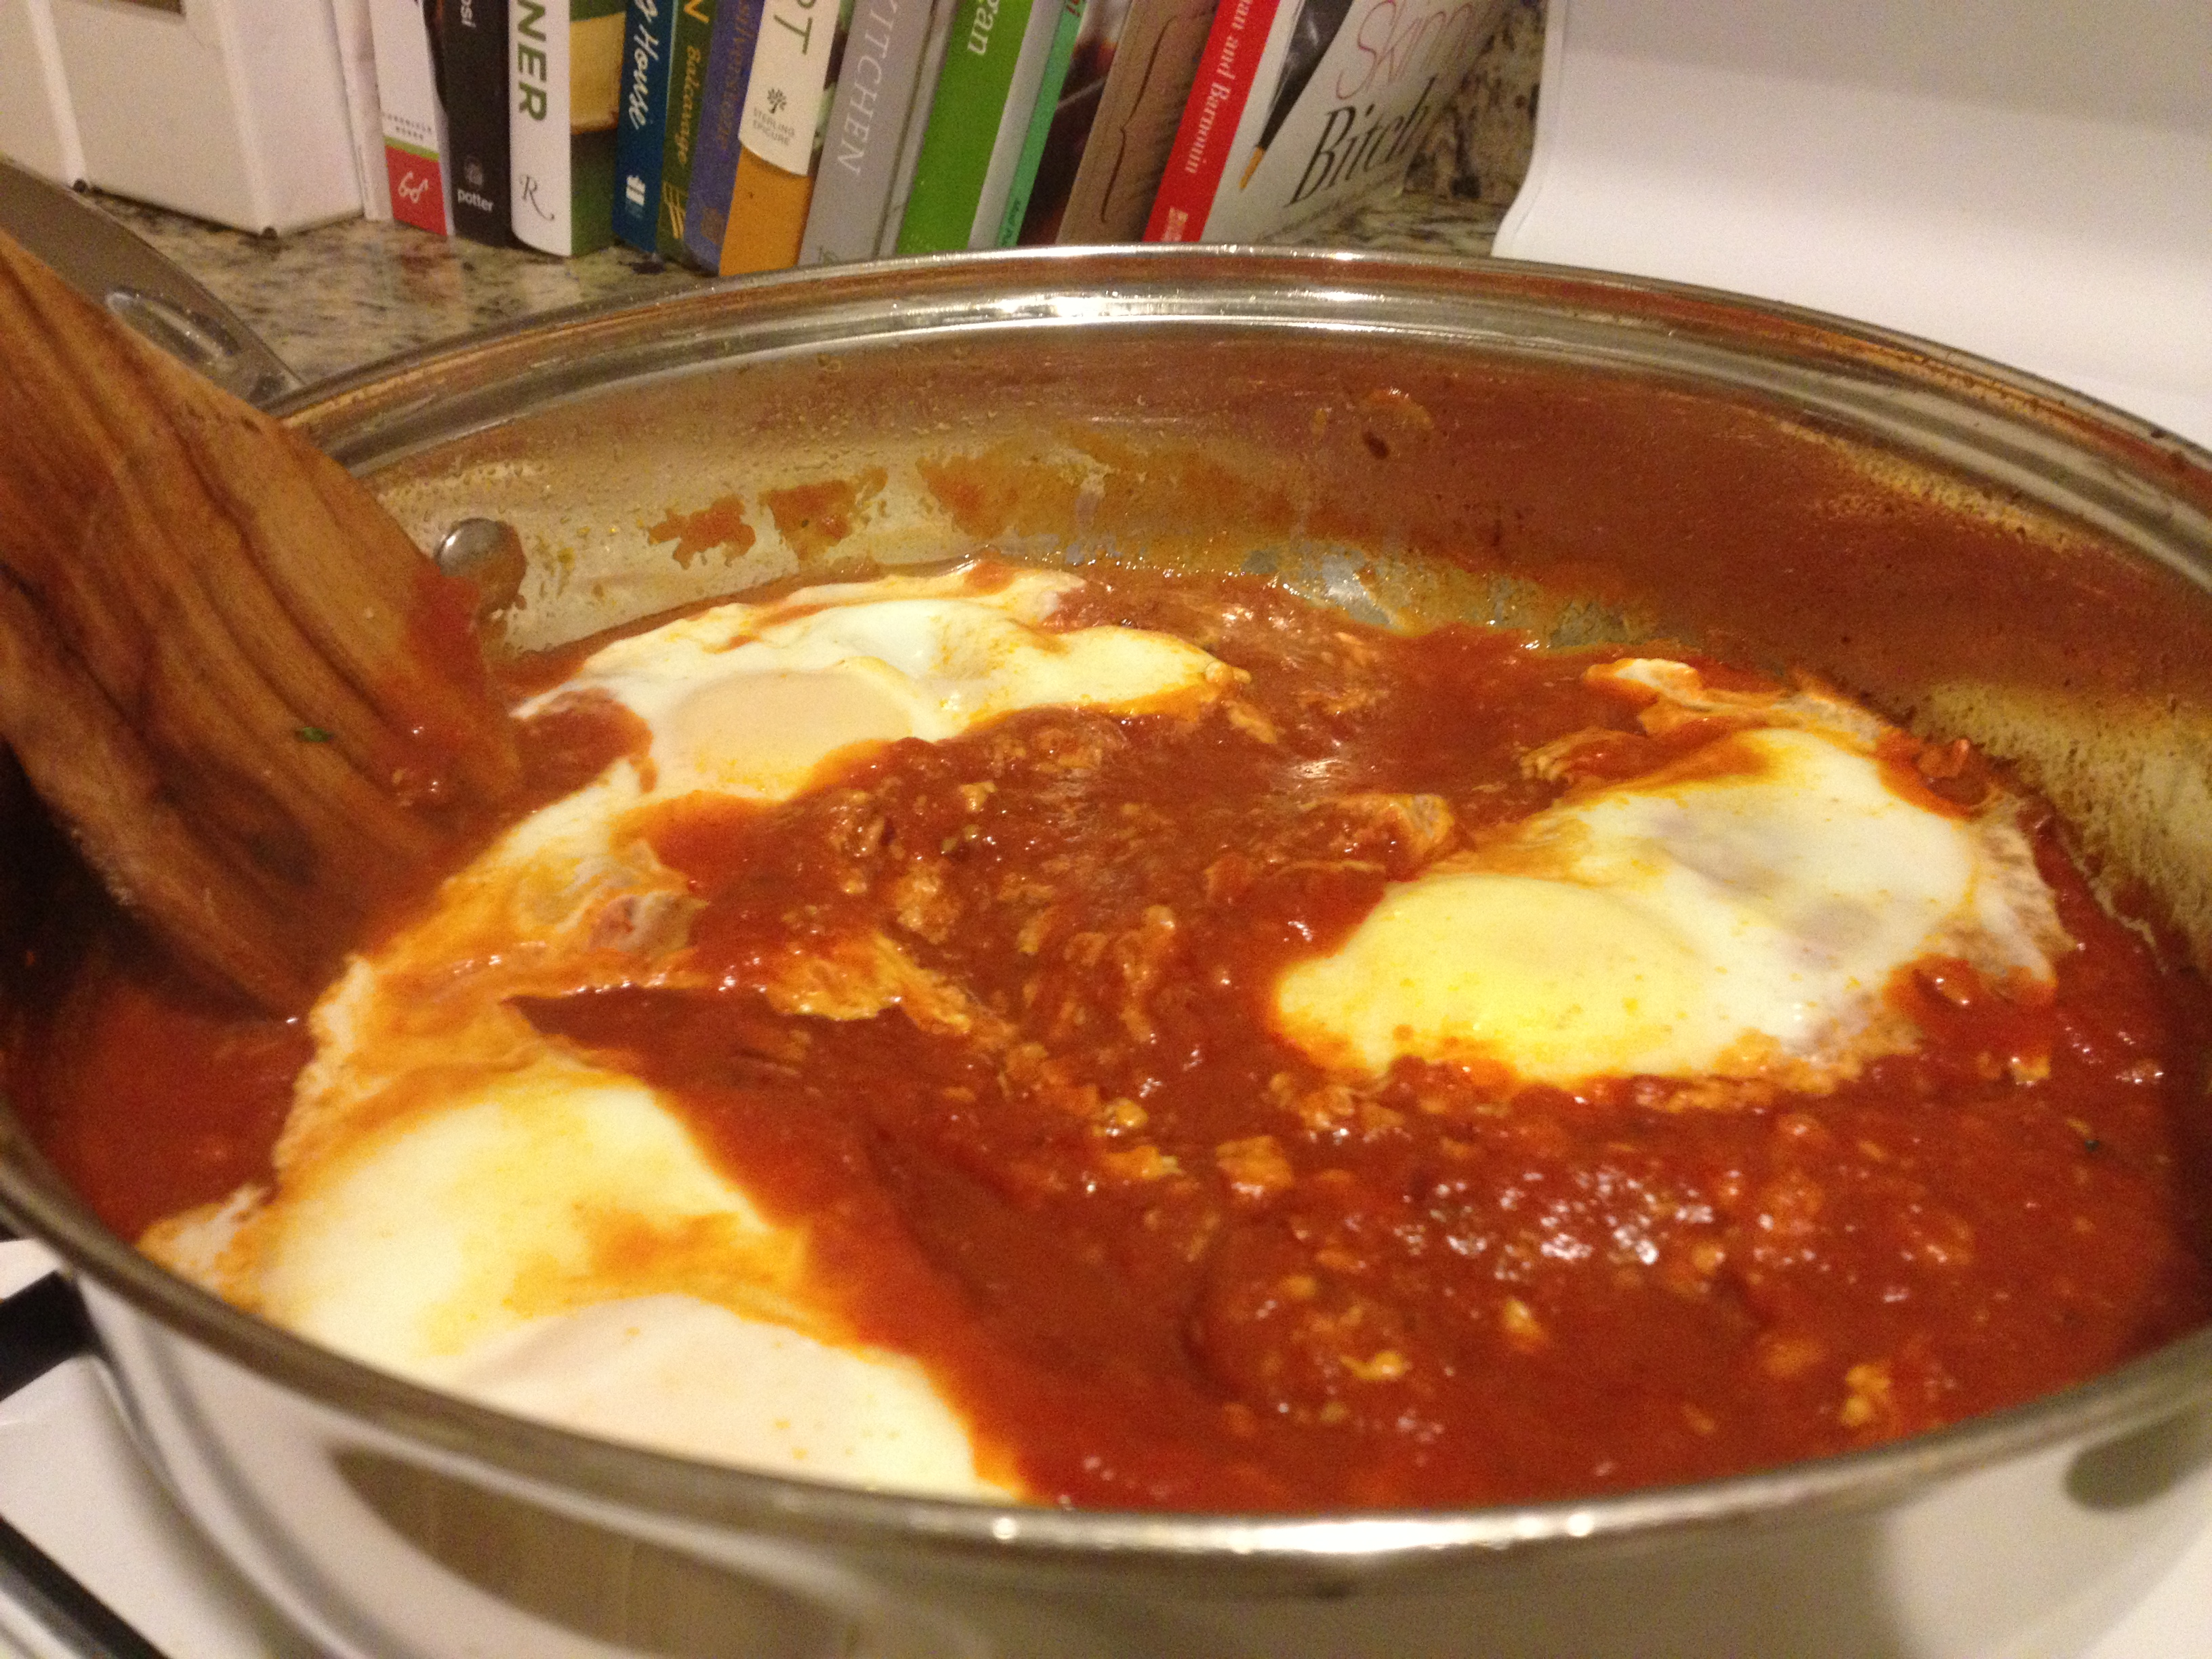 POACHED EGGS IN TOMATO SAUCE | Soup Du Jour